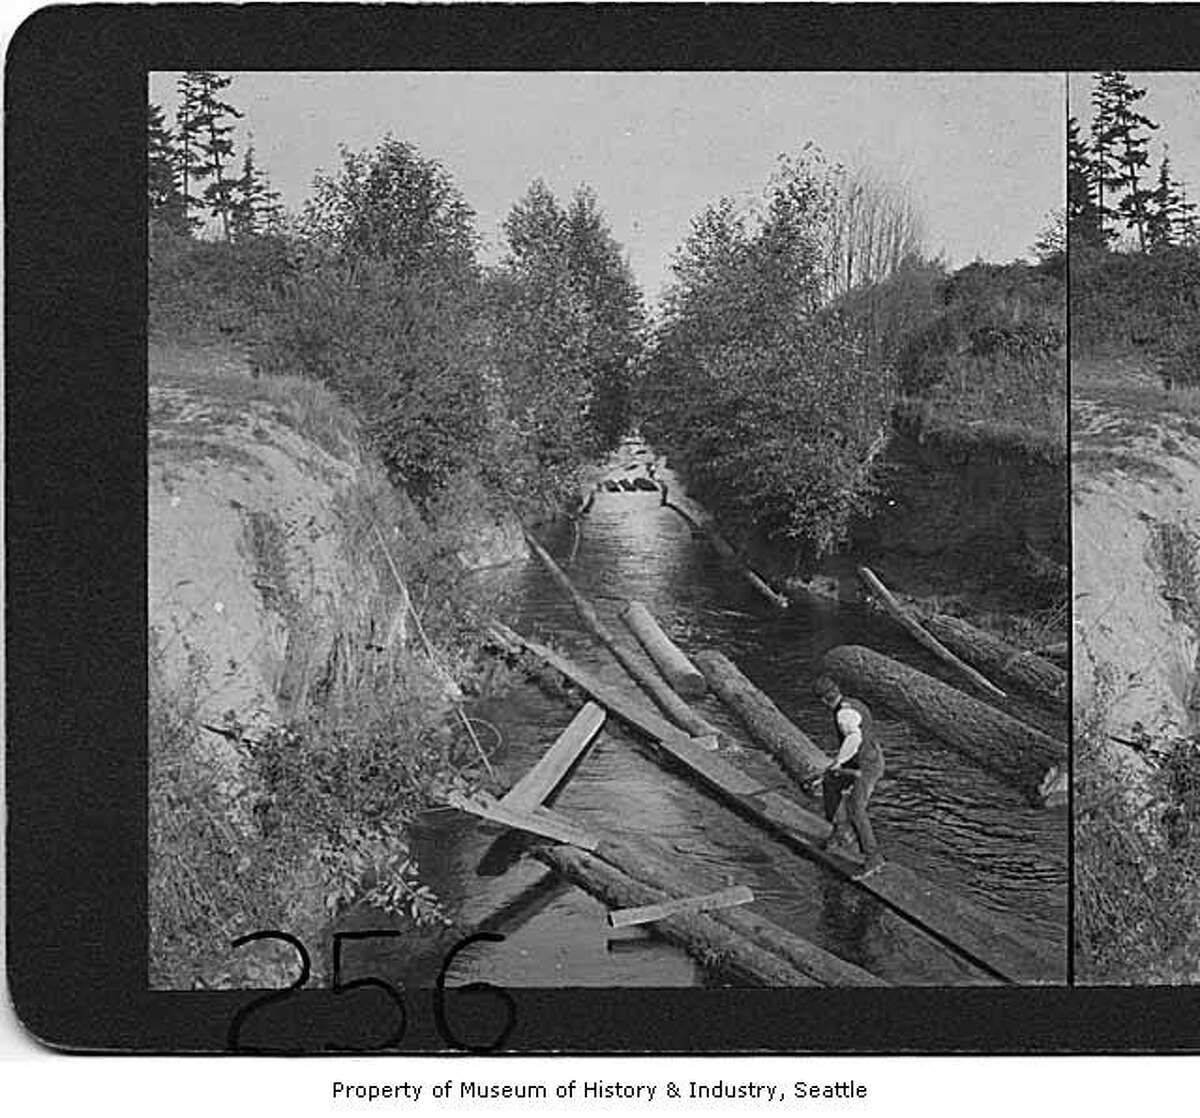 """""""Before the building of the Lake Washington Ship Canal, a small canal connected Lake Washington with Lake Union's Portage Bay. This photo shows a man guiding logs down the canal in the Montlake area."""" -MOHAI. Photo circa 1908. Photo courtesy MOHAI, Frank M. Harwood Stereographs, image number 1974.5868.256."""